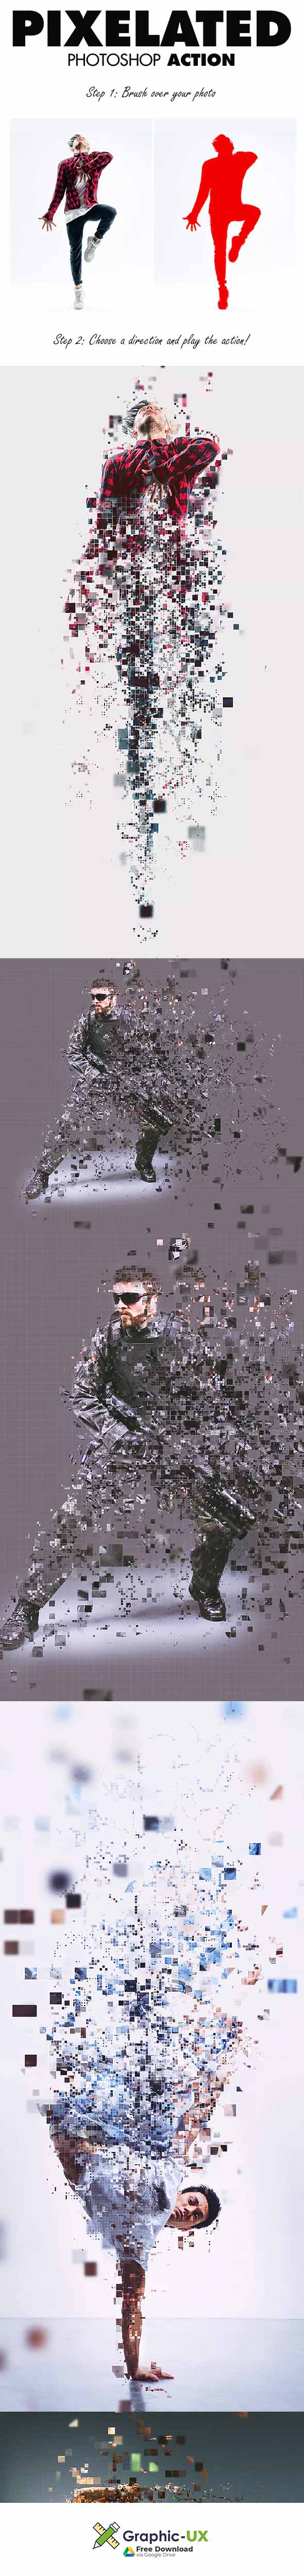 Pixelated Photoshop Action free download – GraphicUX